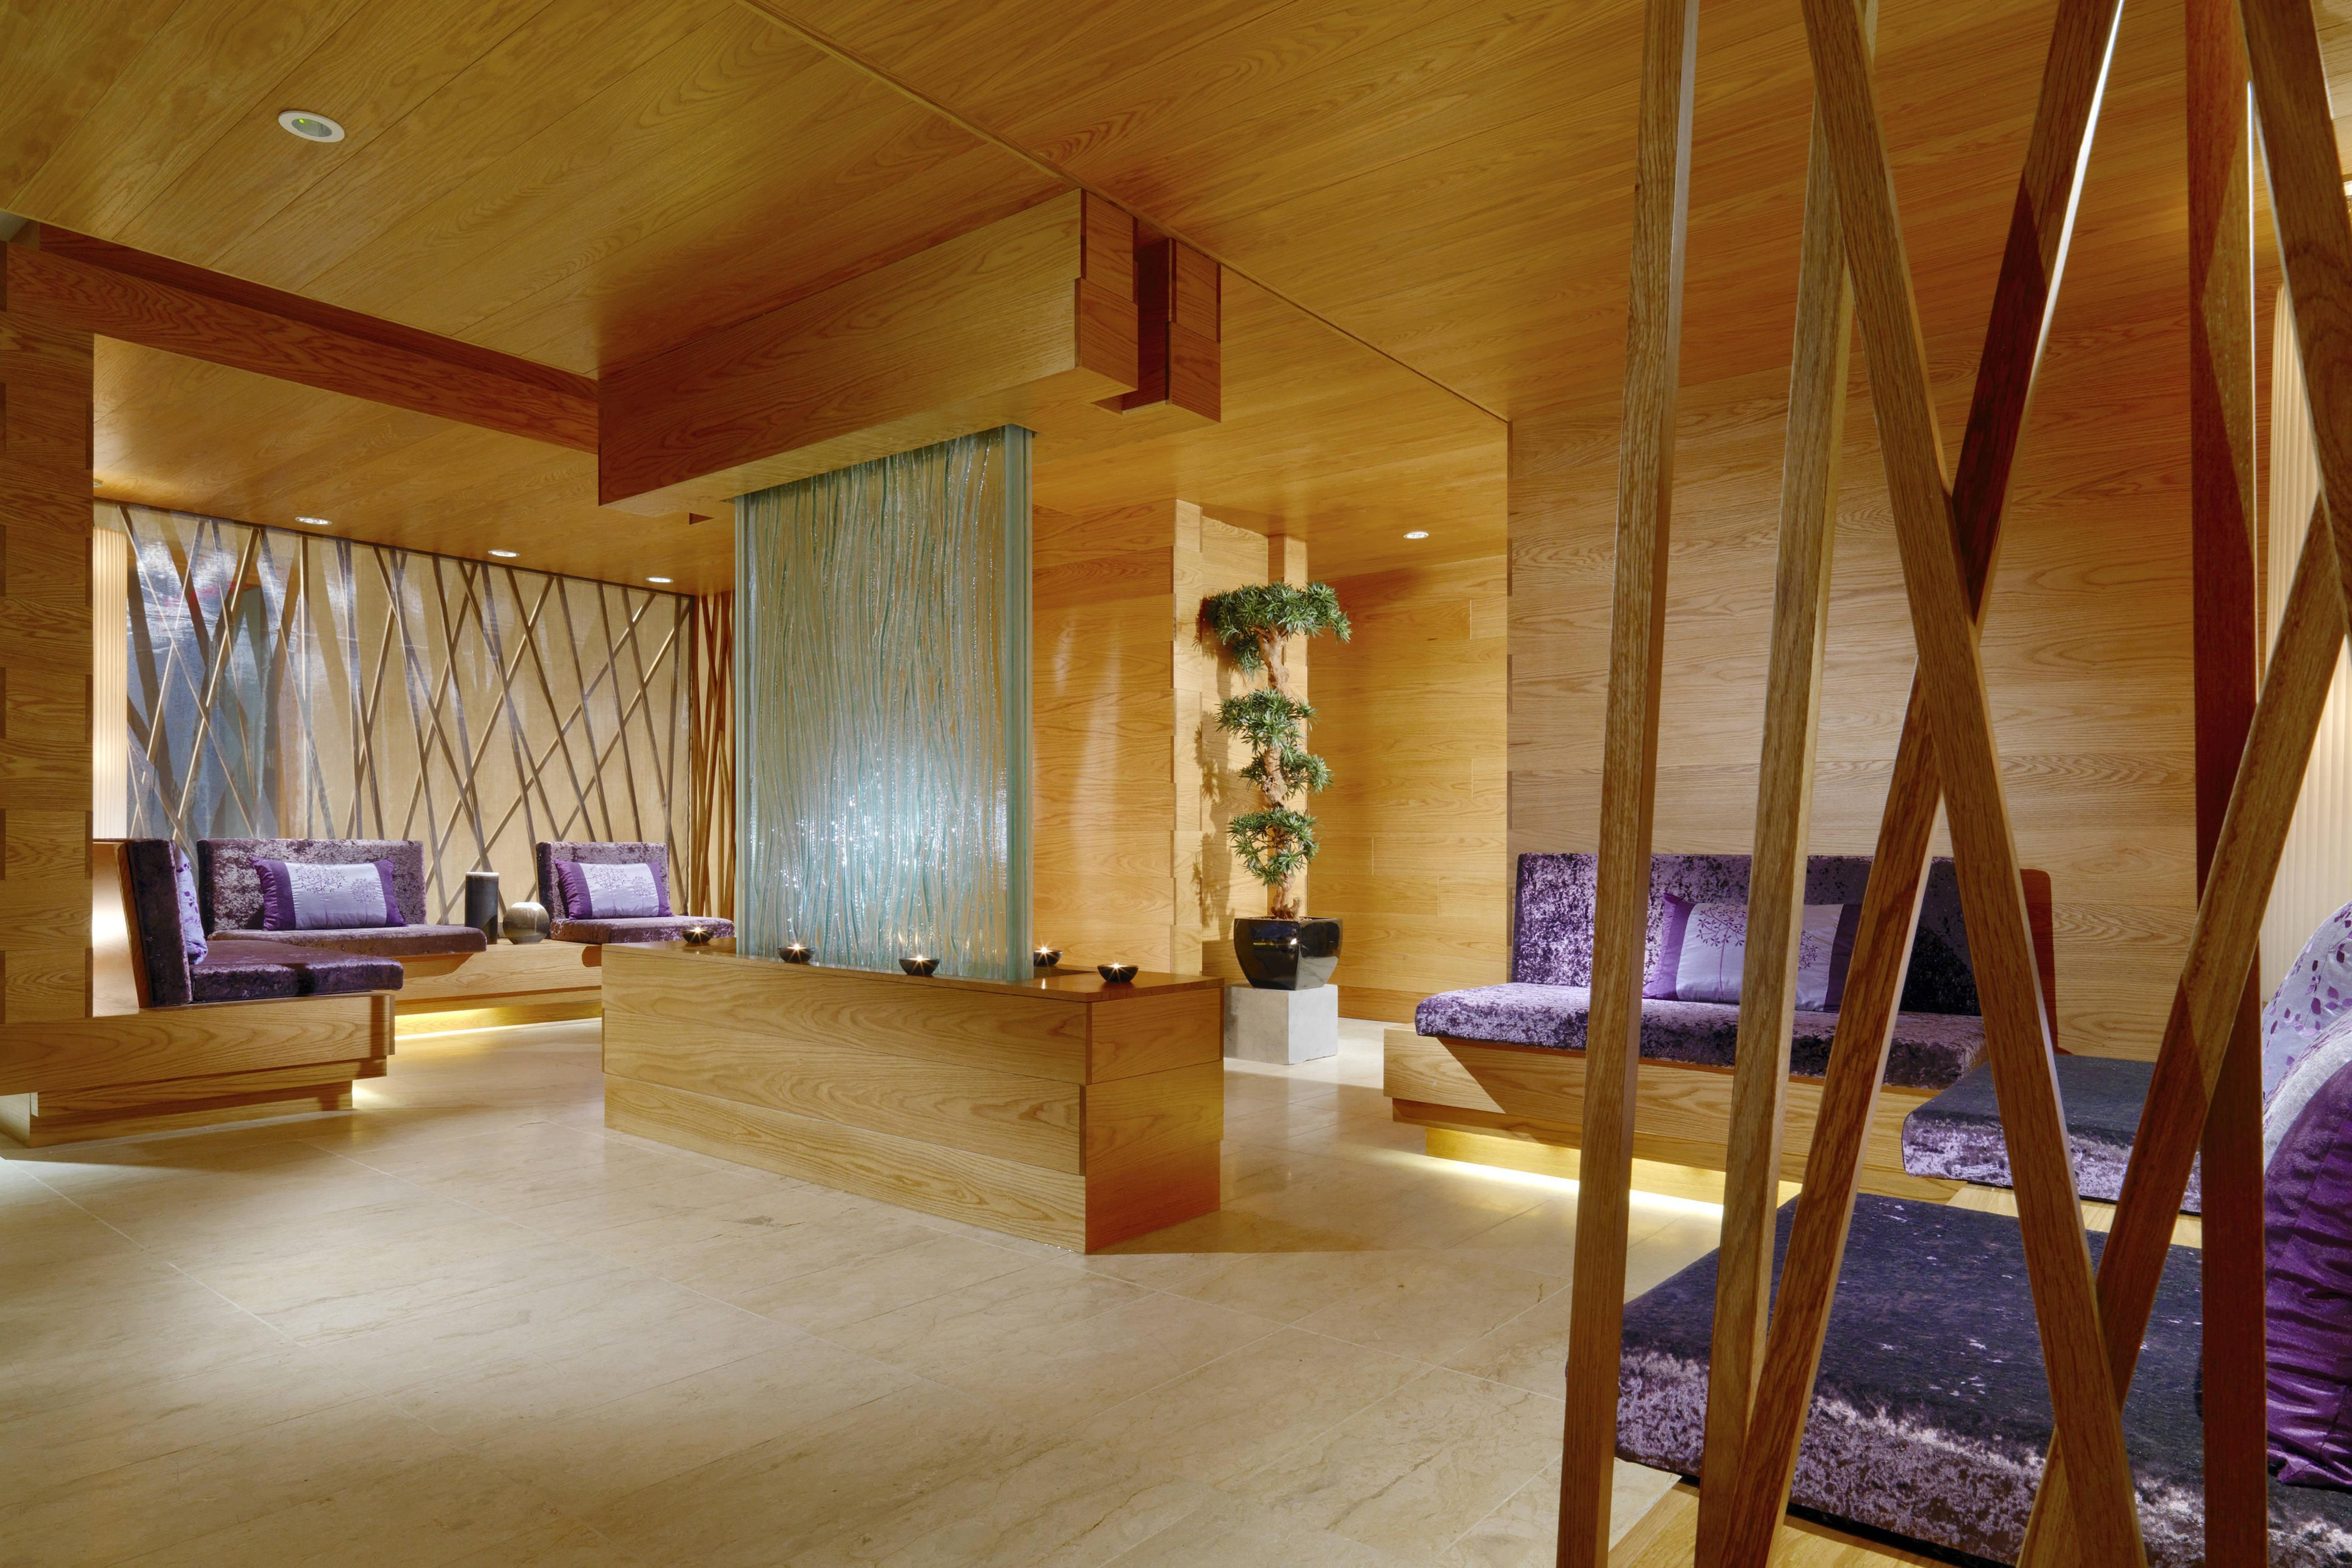 The Serenity Area in Spa Sirana